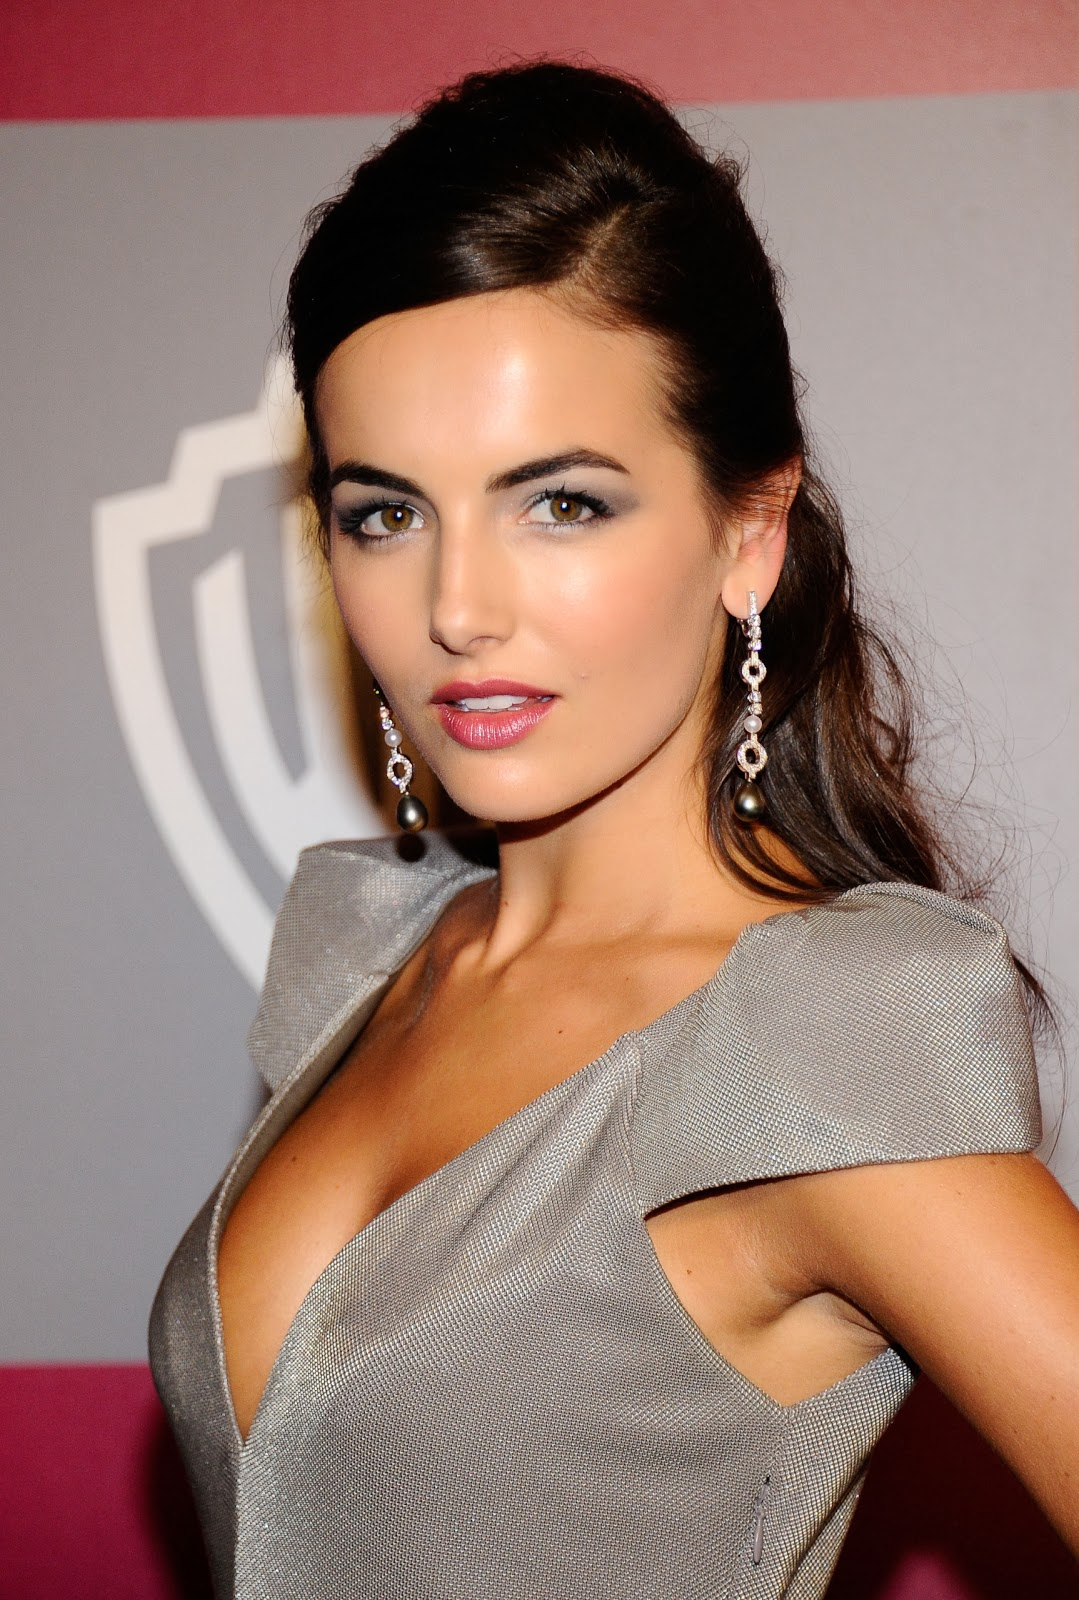 camilla belle summary film actresses. Black Bedroom Furniture Sets. Home Design Ideas